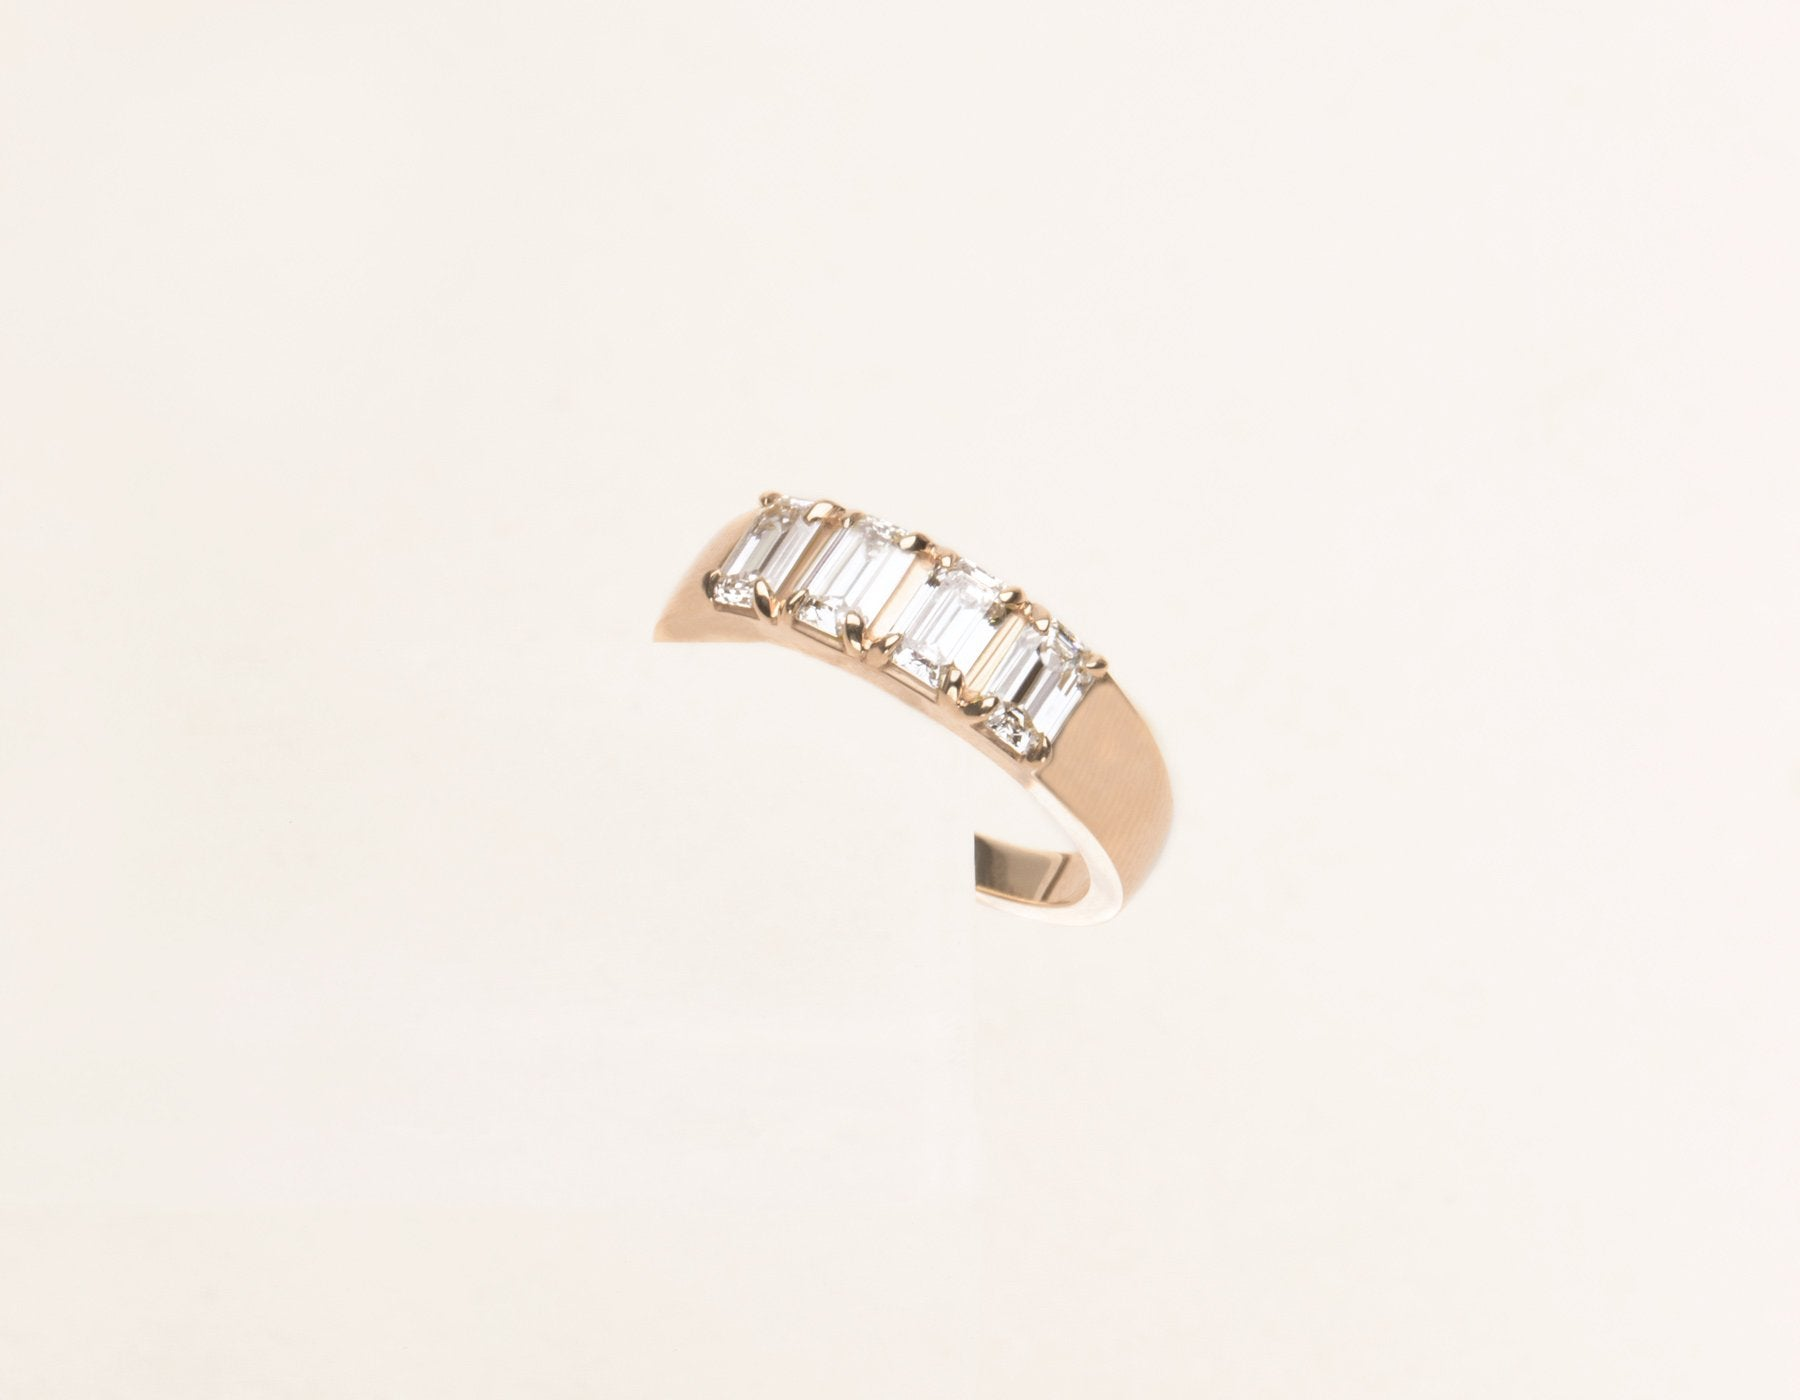 Classic minimalist 14k solid gold Emerald cut Diamond Tetrad Band by Vrai & Oro sustainable jewelry, 14K Rose Gold